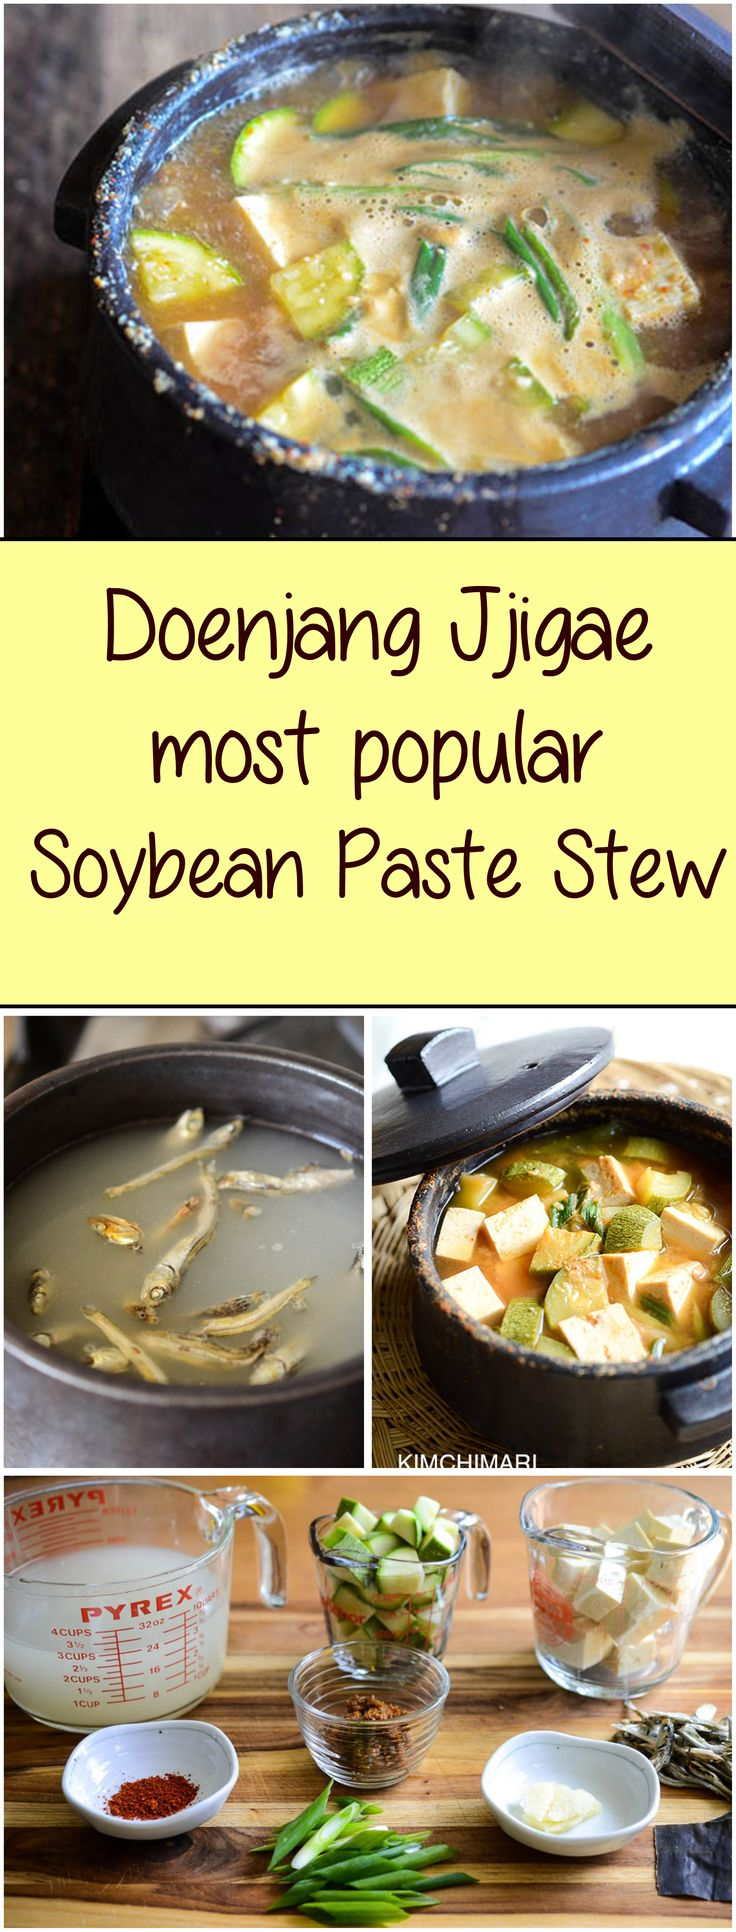 Doenjang Jjigae is made with Korean Soybean Paste ( 된장.)   It is a favorite stew for a home cooked Korean meal.  The authentic, deeply developed flavors are shown in this recipe. |  Kimchimari.com